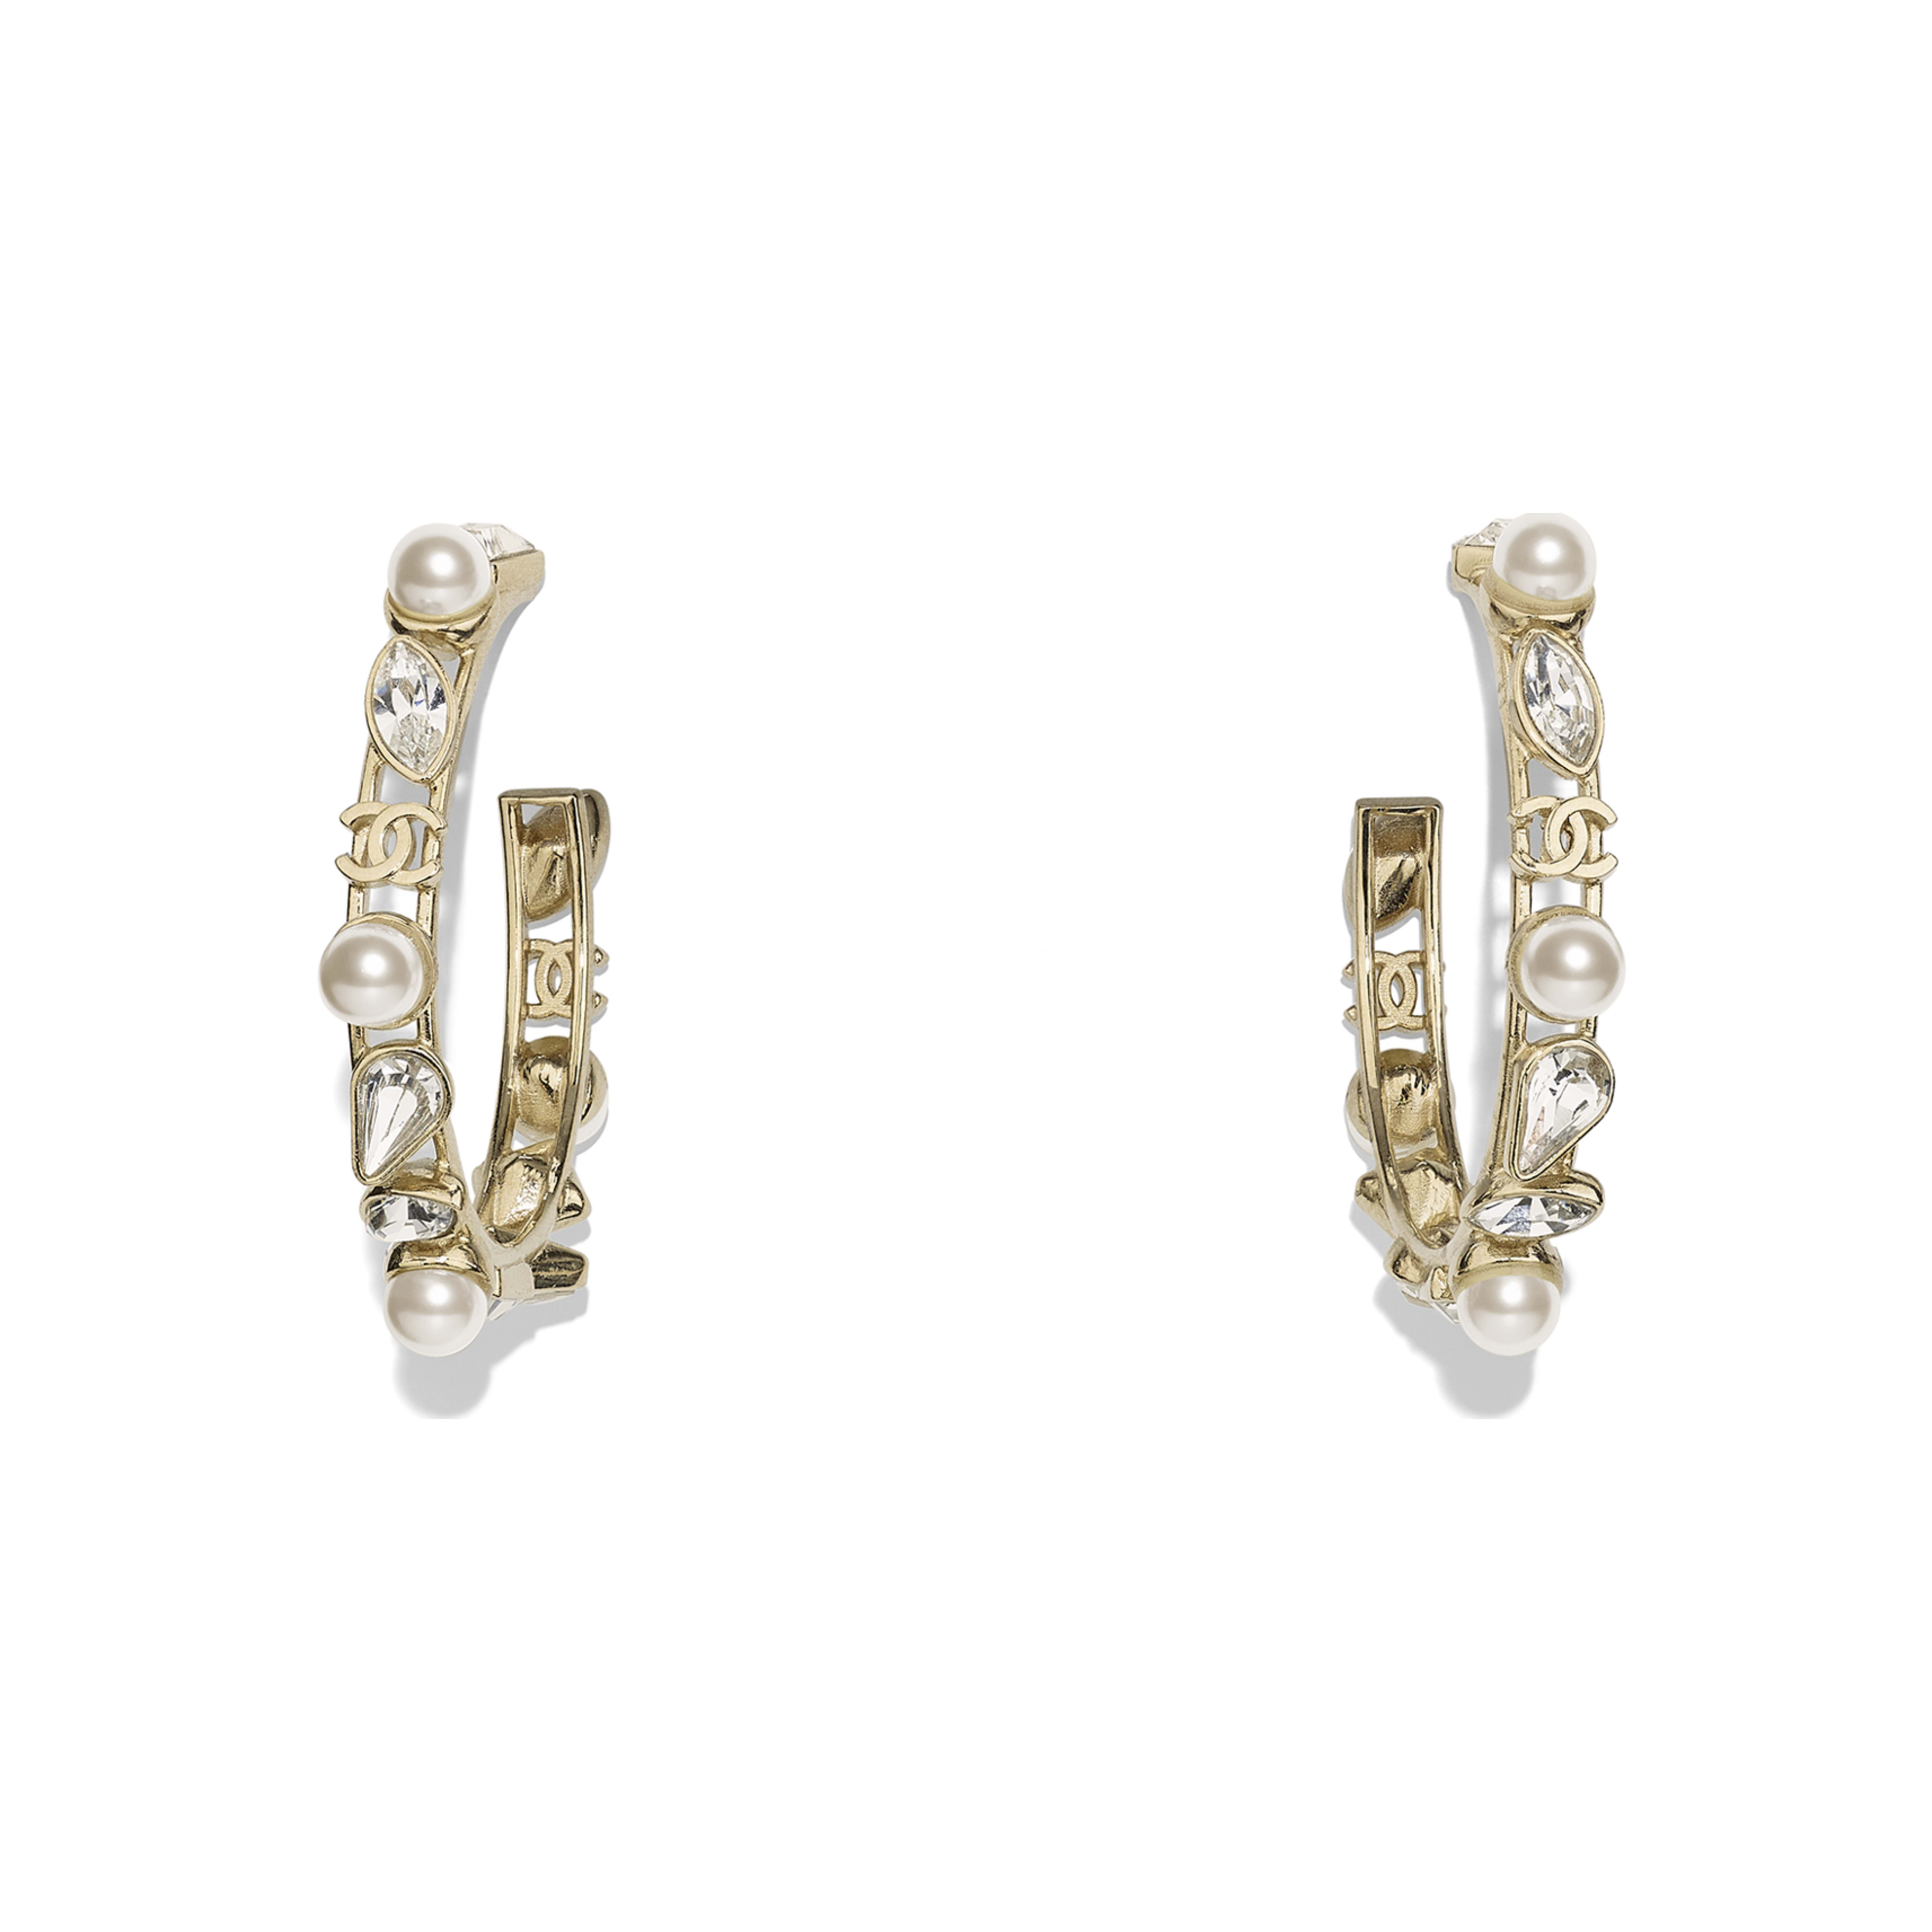 Earrings - Gold, Pearly White & Crystal - Metal, Glass Pearls & Strass - Default view - see full sized version